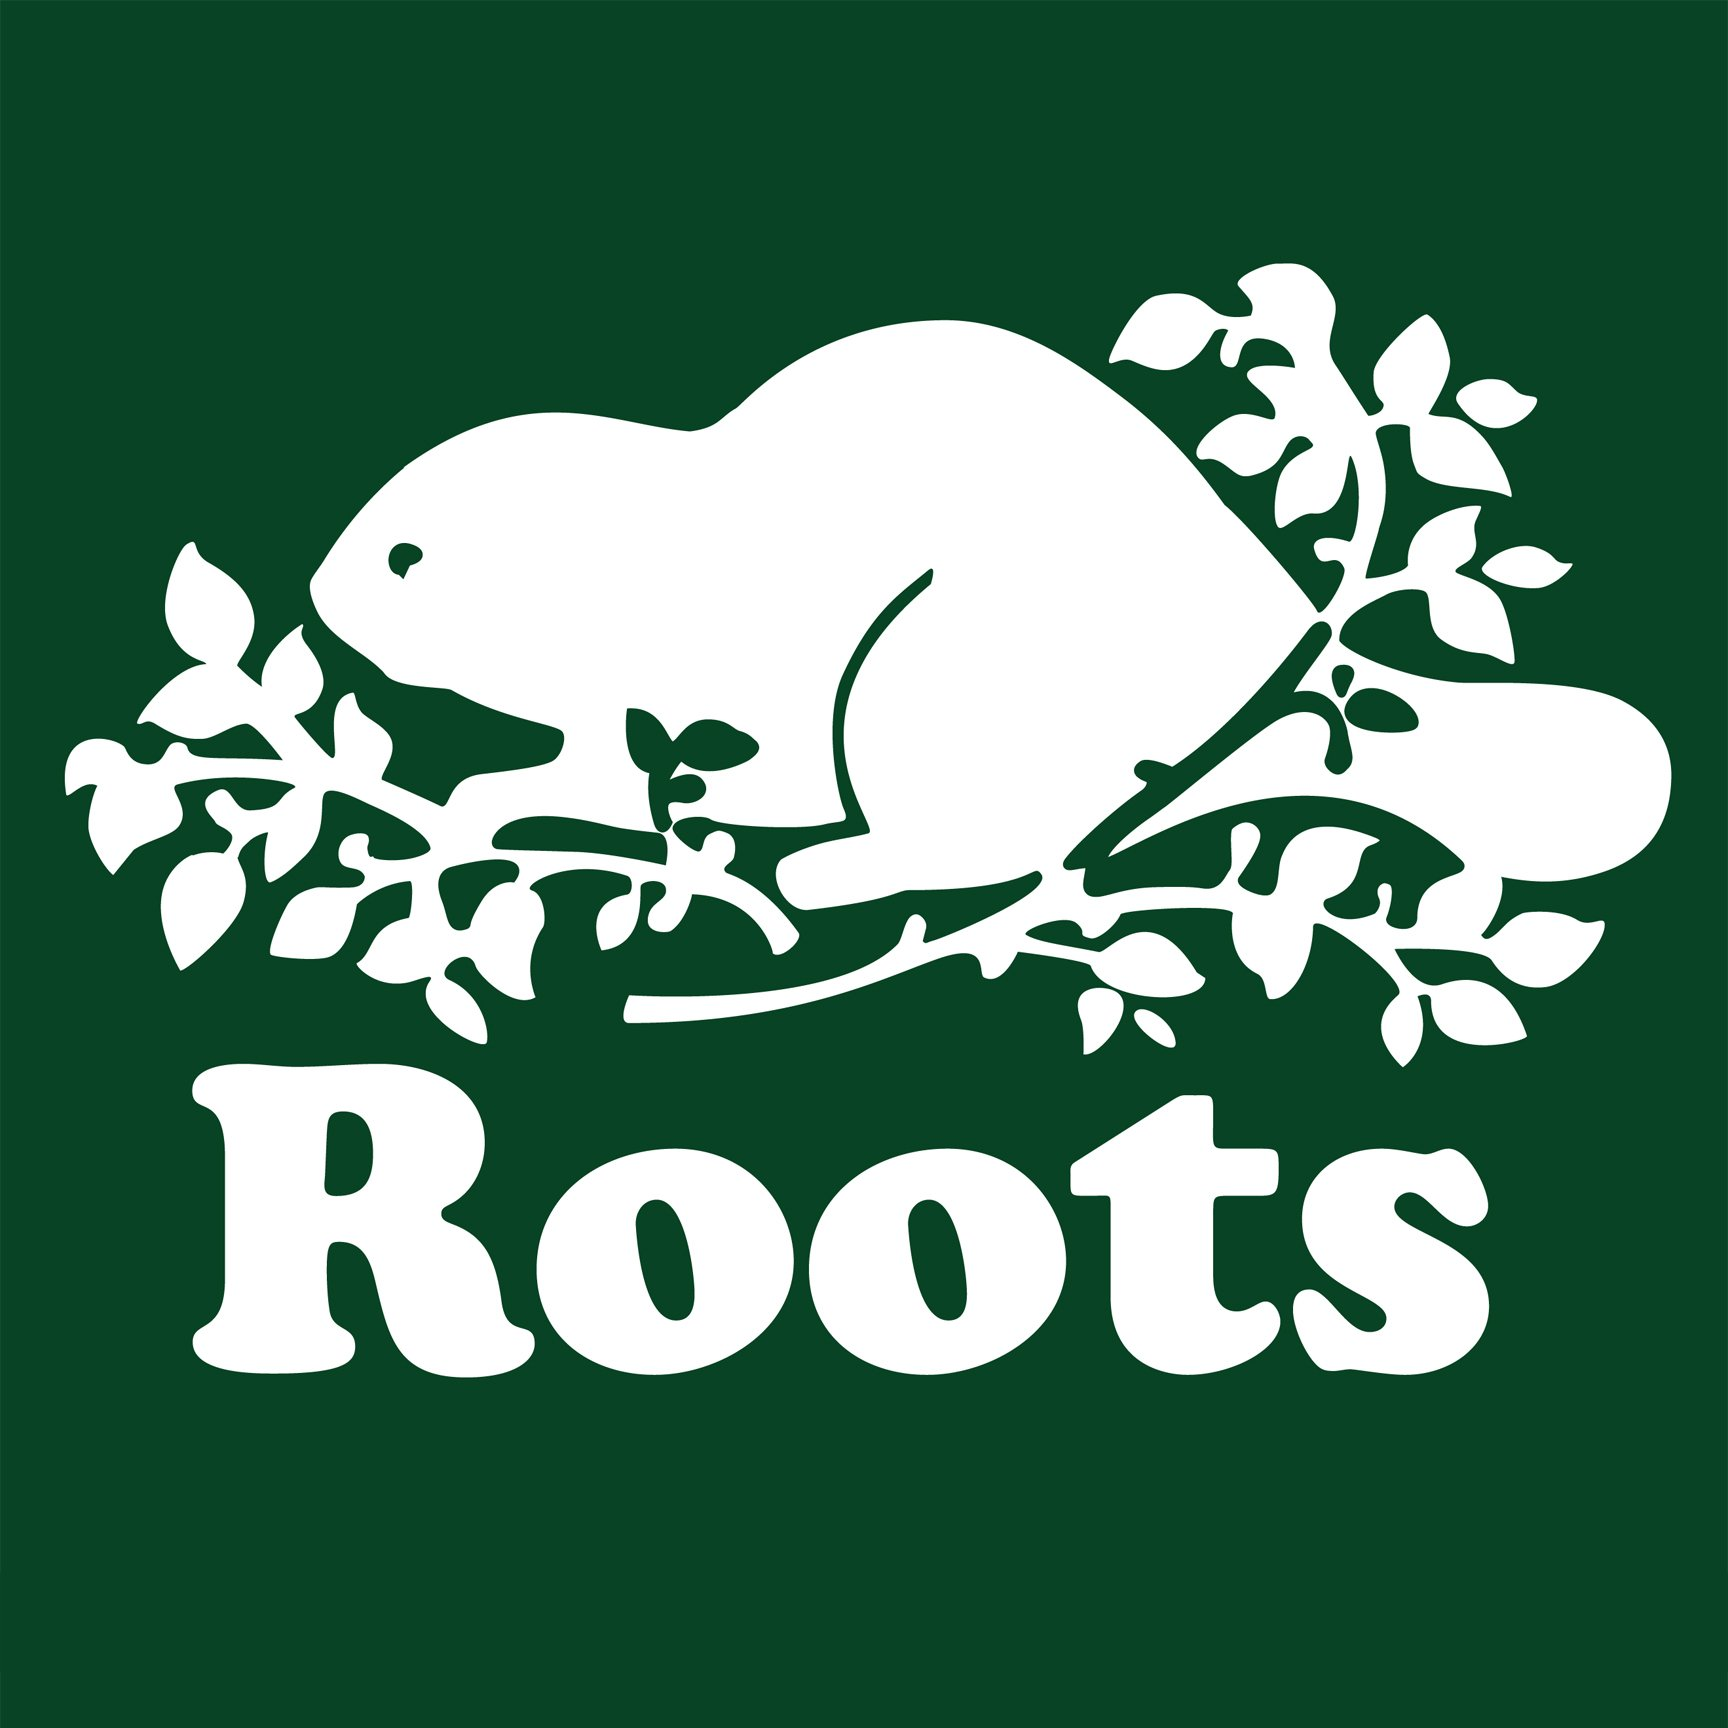 CANADA'S ROOTS | Grace Ng's COMM 101 BLOG